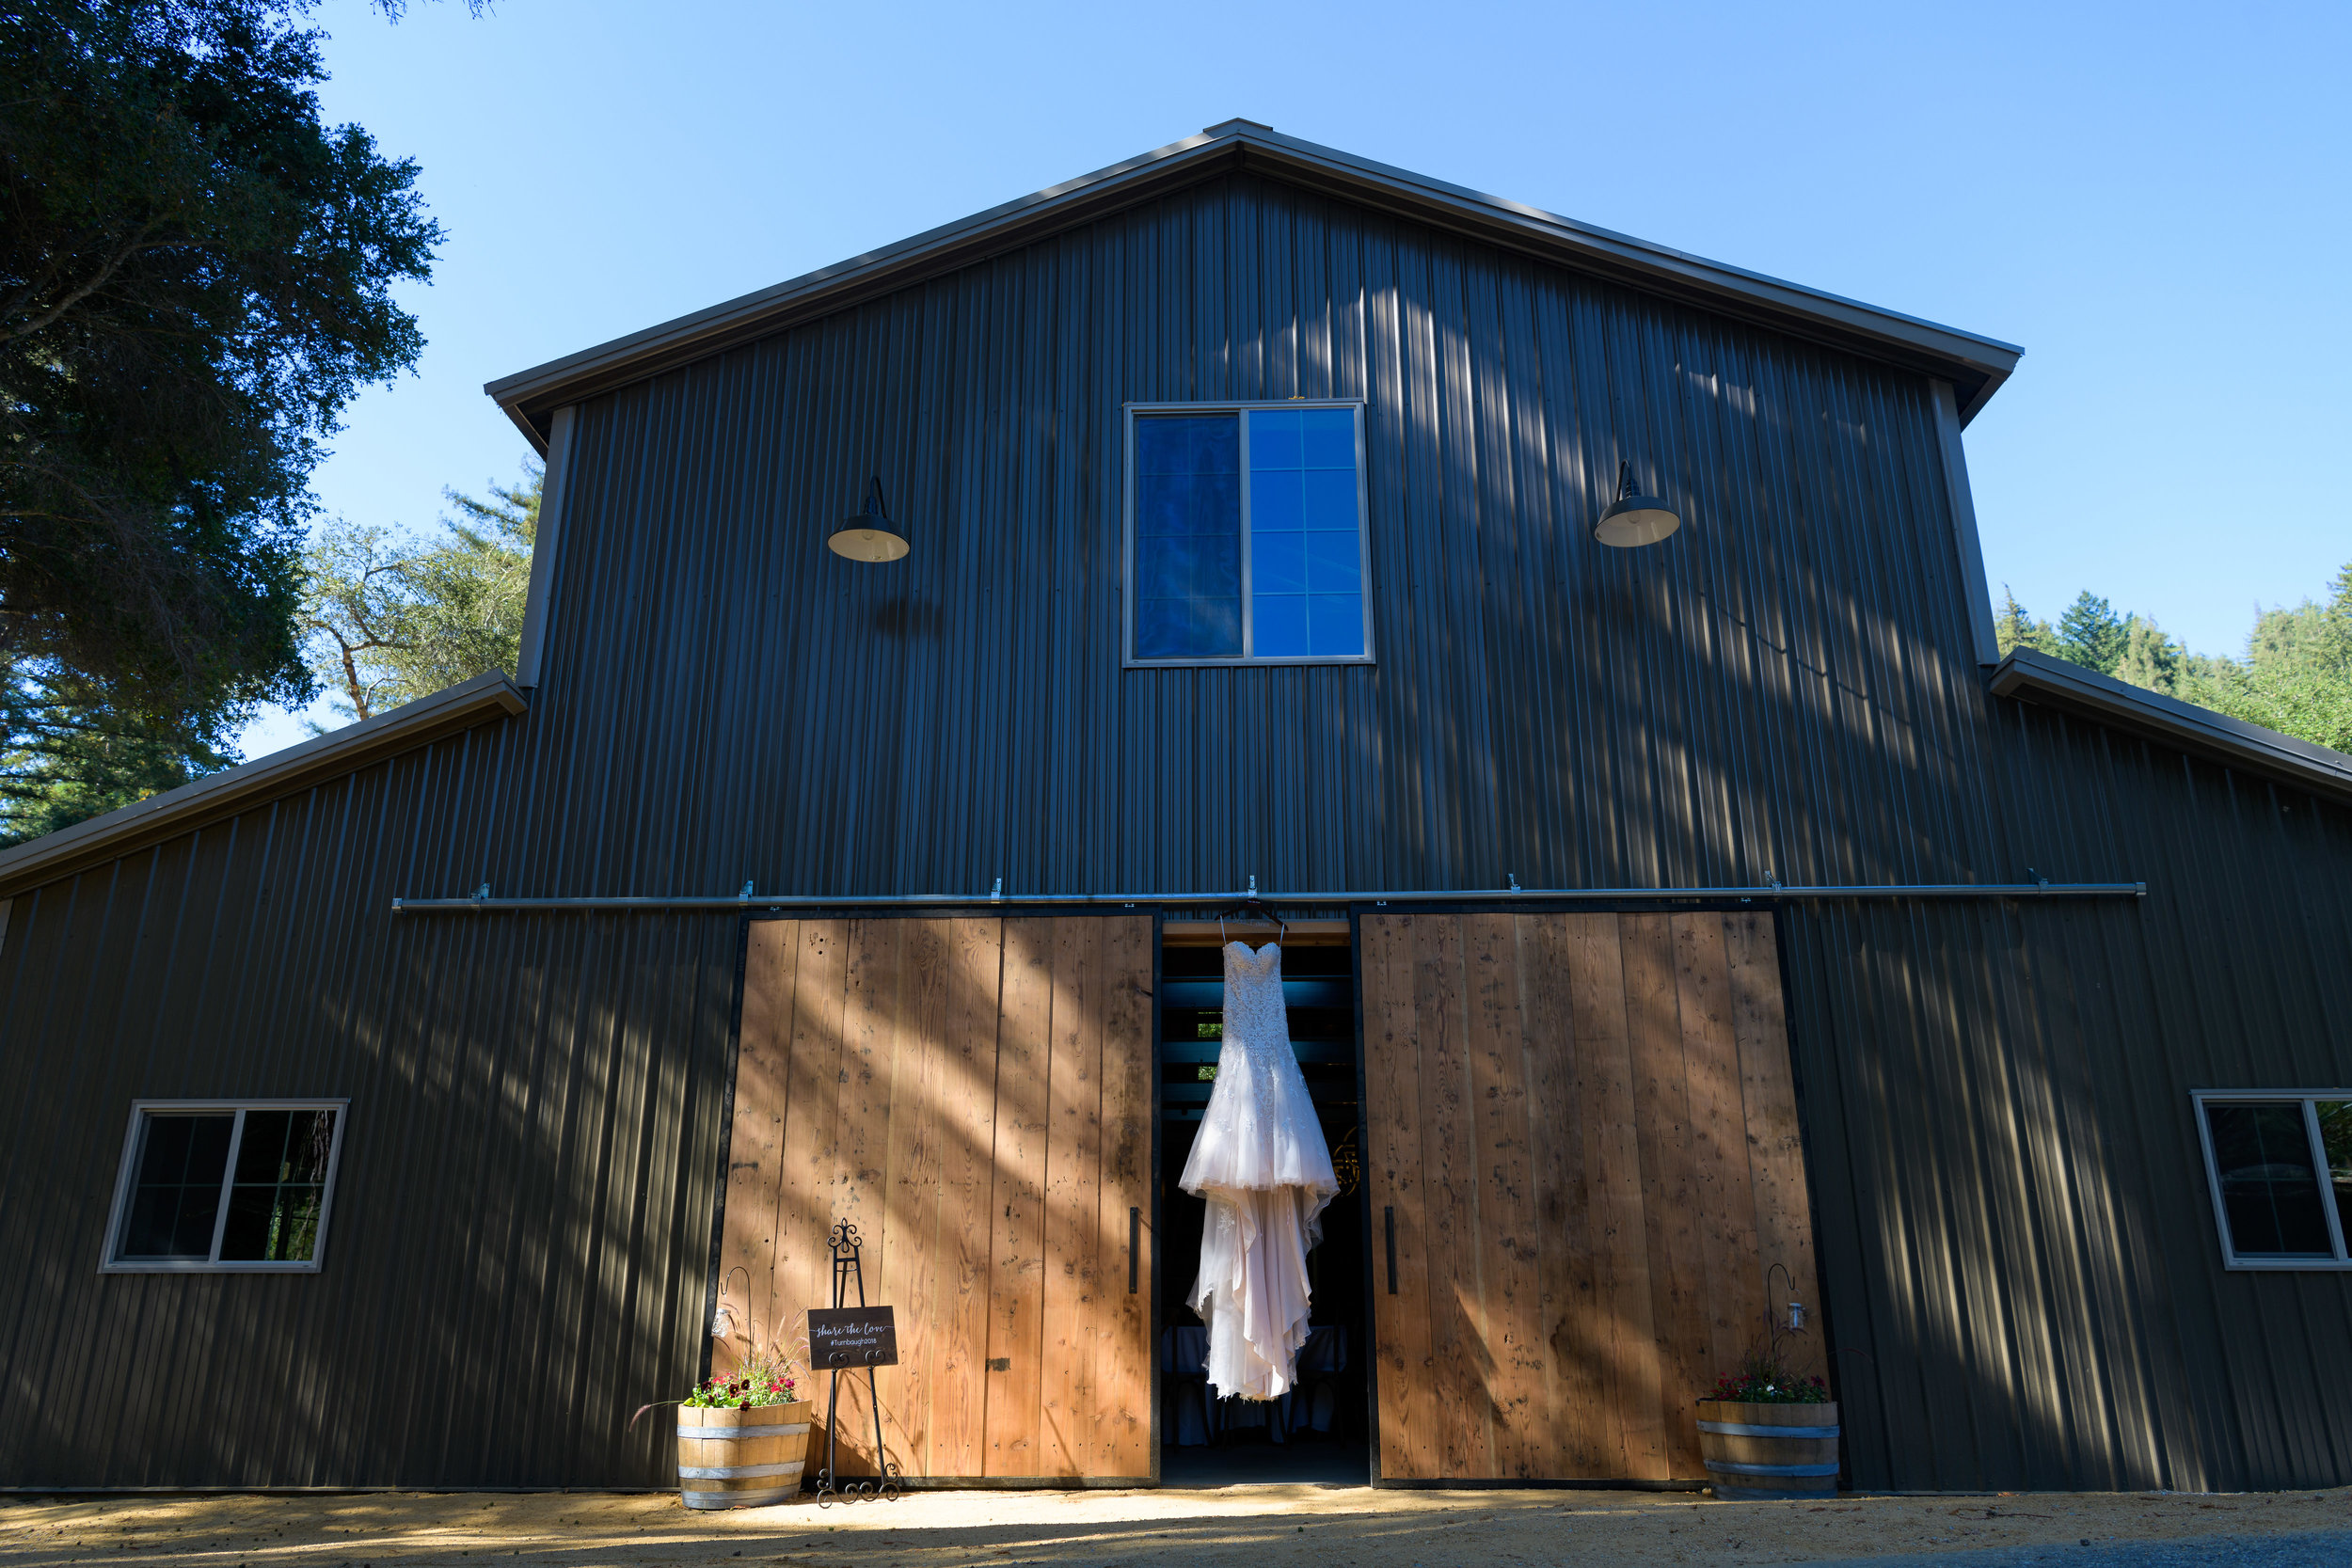 8340_Maddie_and_Nick_River_House_Ben_Lomond_Wedding_Photography.jpg